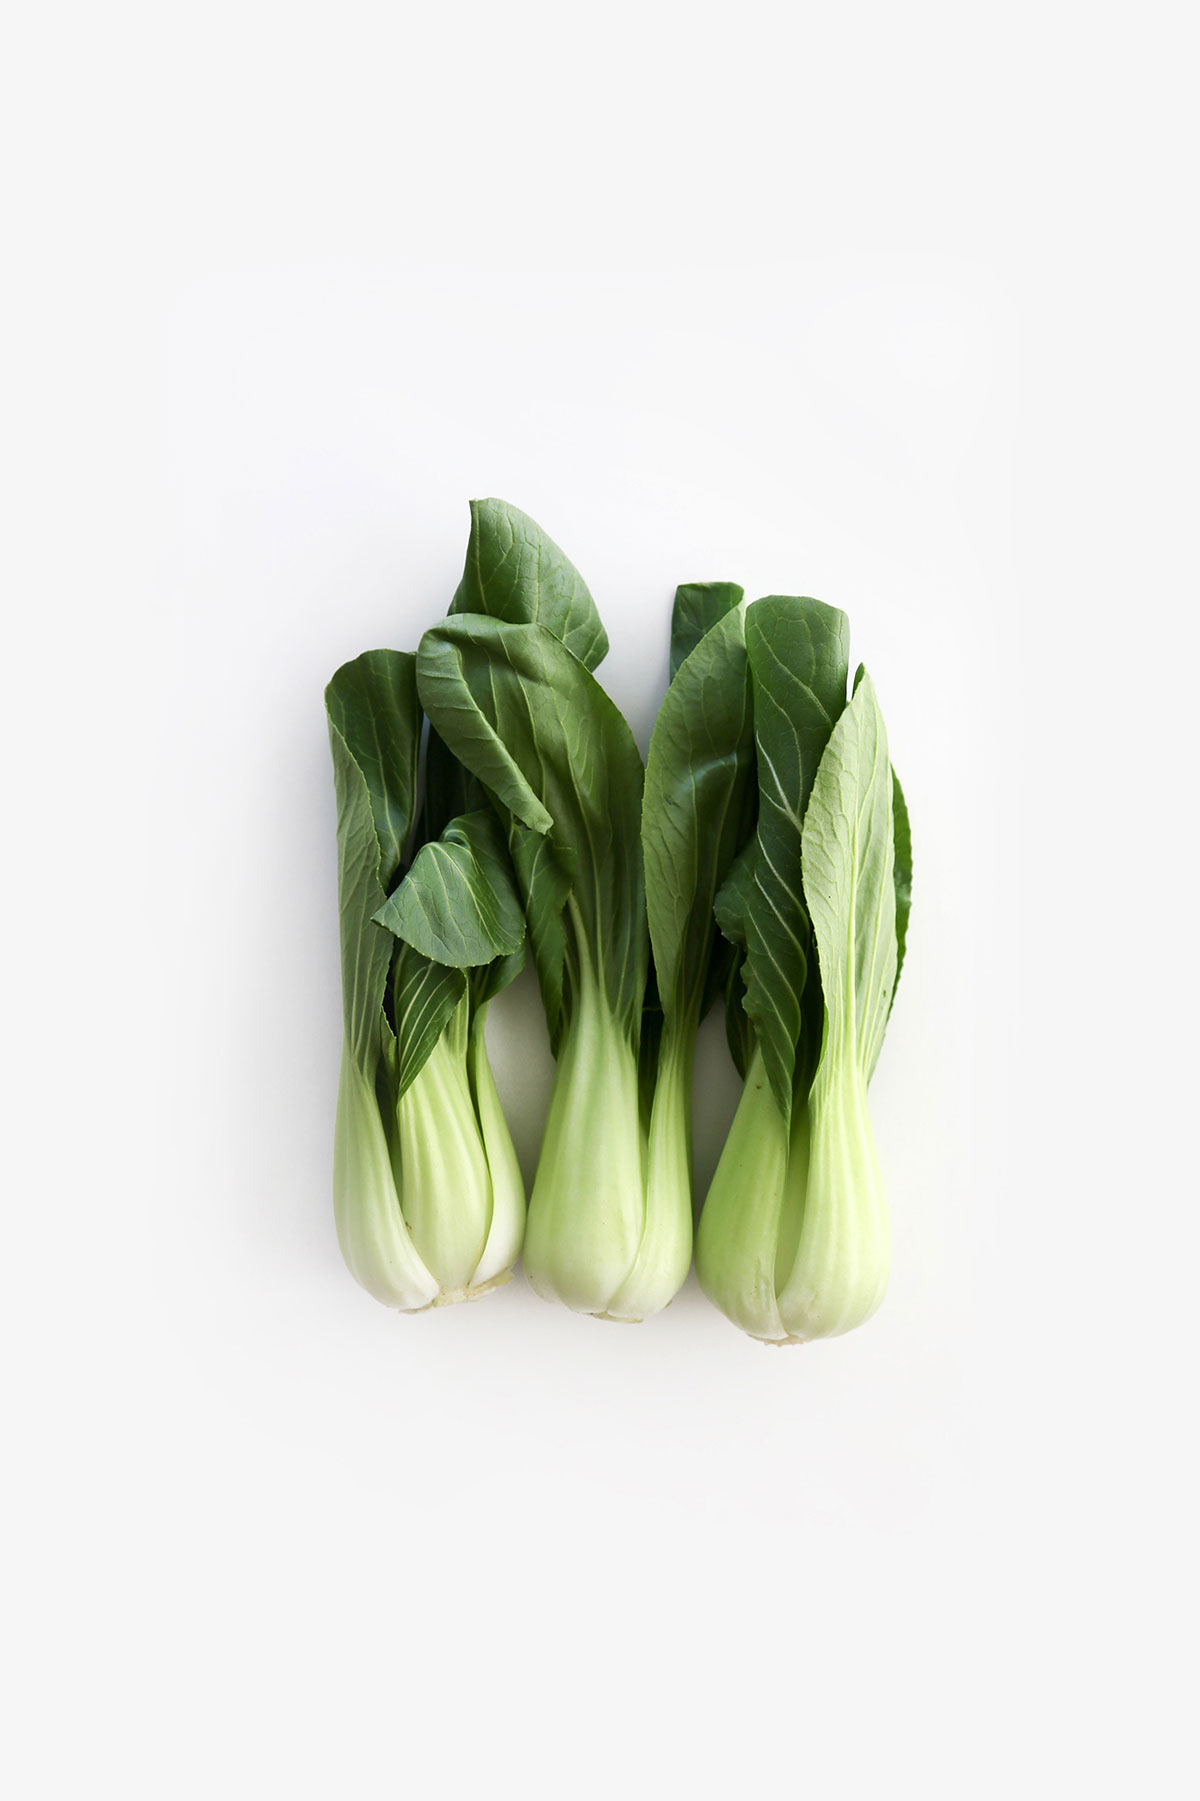 Keto Bok Choy, a guide to keto foods for low carb. keto, keto ingredients, keto foods, keto produce, keto vegetables, ketogenic diet, keto shopping list, low carb, low carb foods, low carb vegetables, lchf, lchf foods